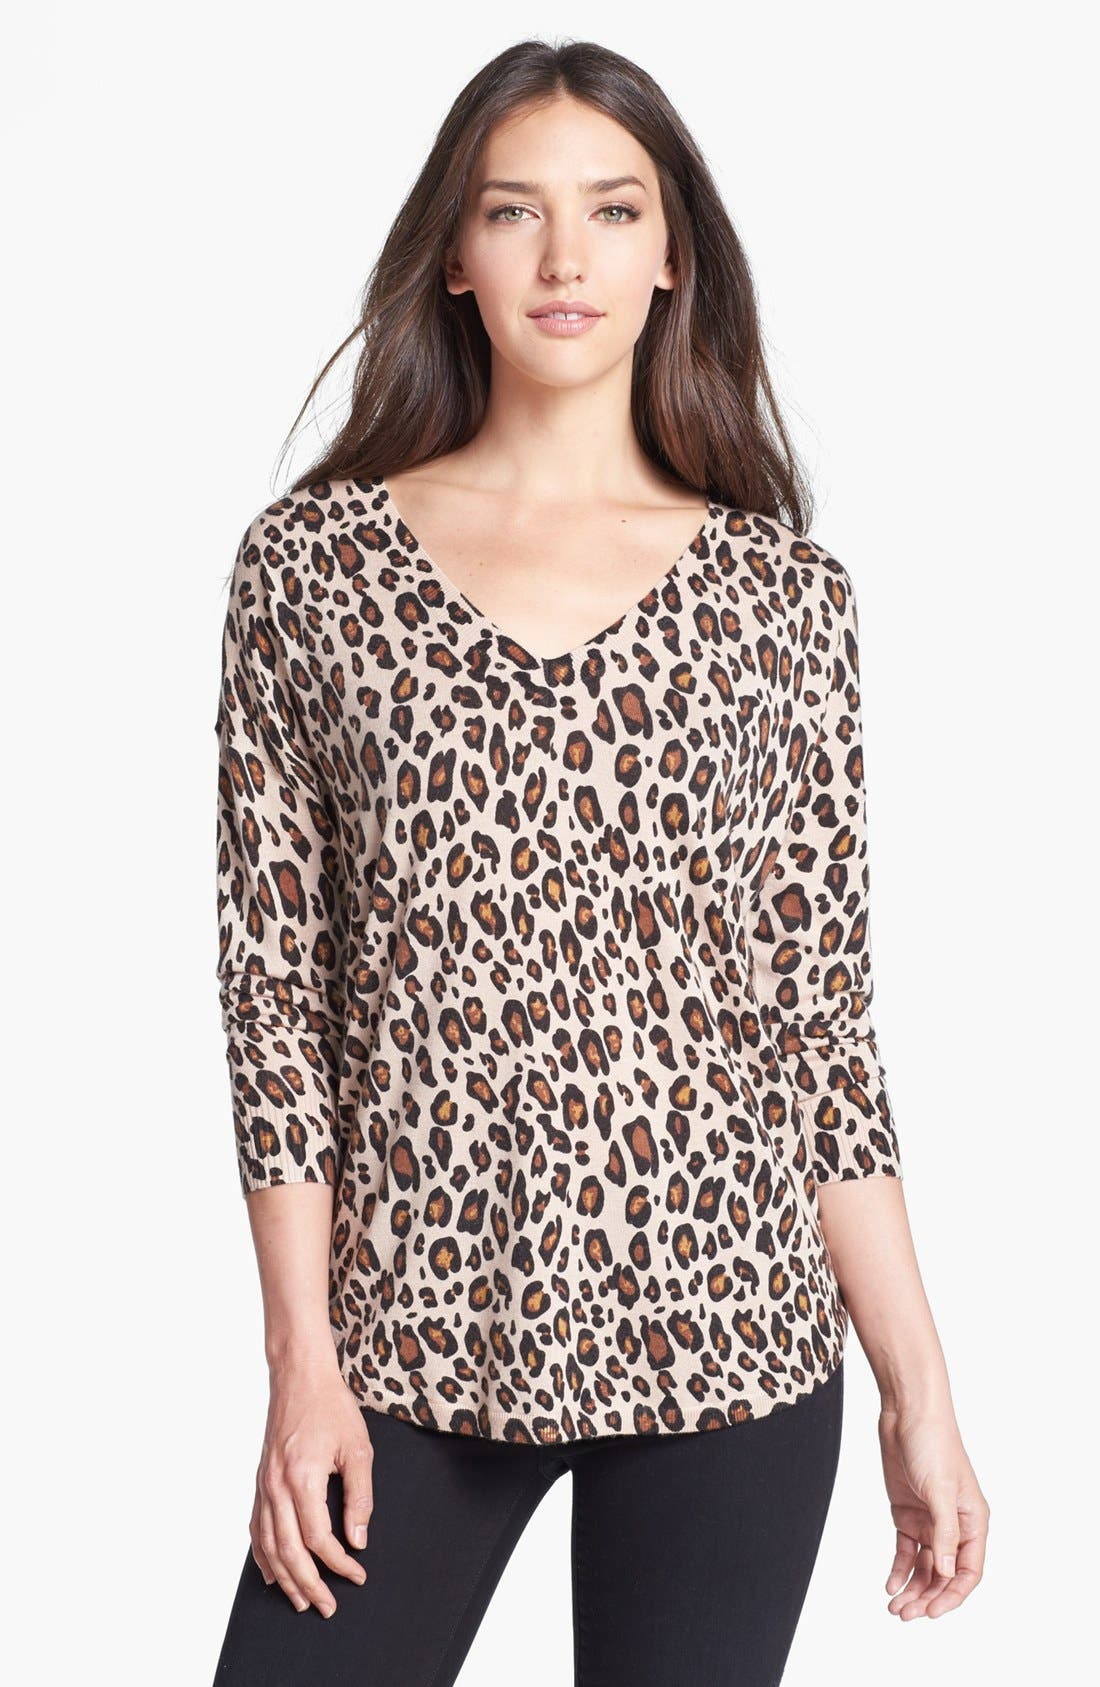 Alternate Image 1 Selected - Joie 'Chyanne' Print Sweater